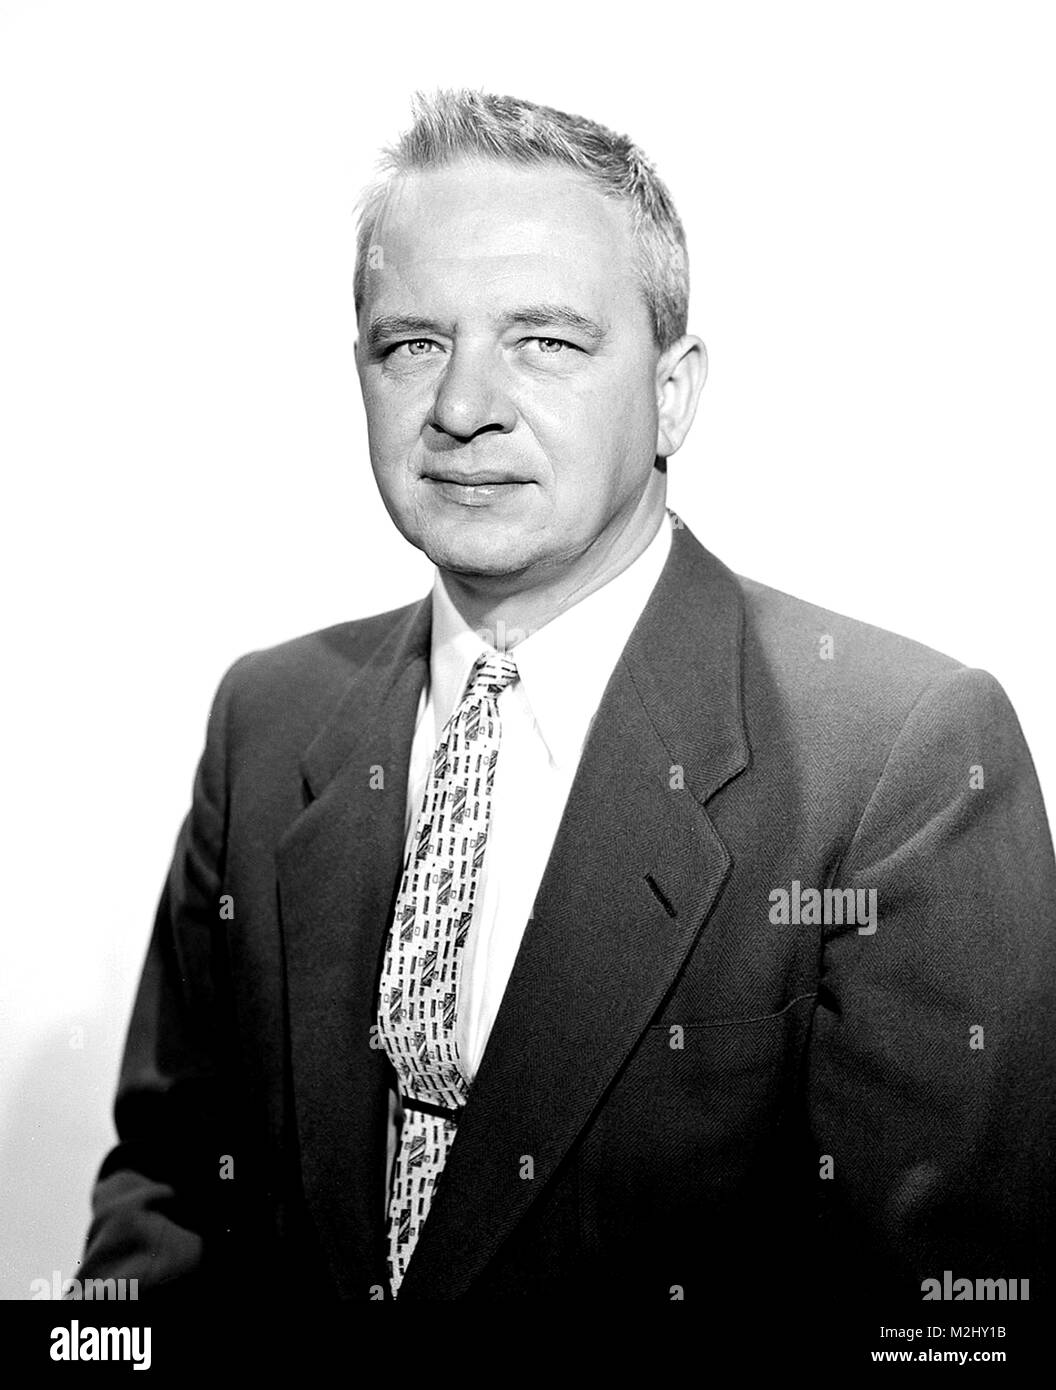 Clyde Cowan, American Physicist - Stock Image